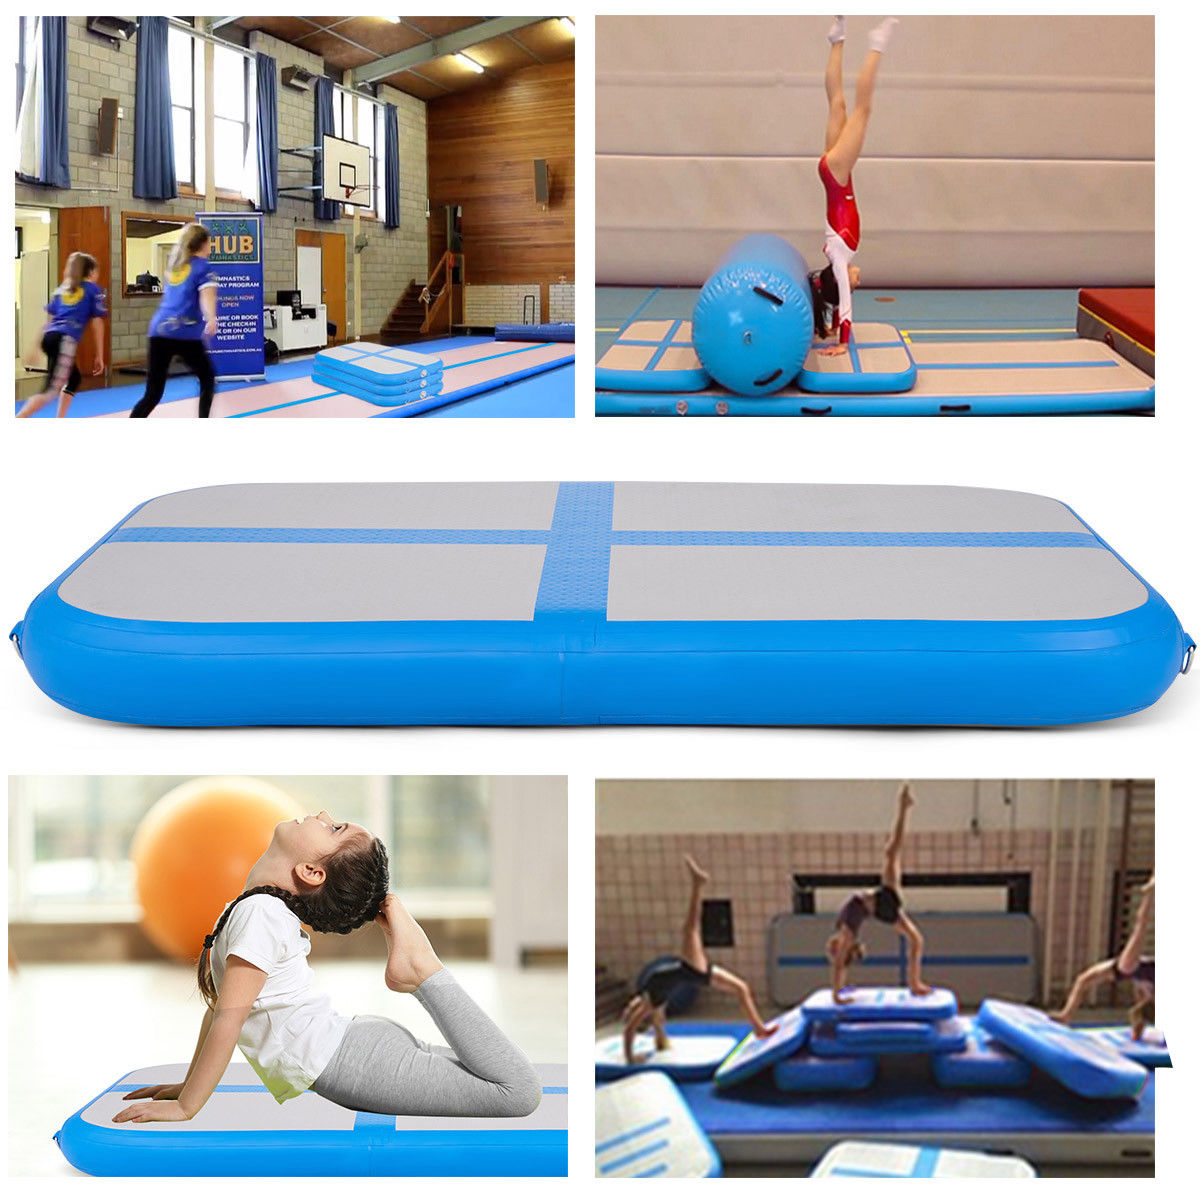 3.3' Inflatable Gymnastics Mat Air Track Floor Mat Water Buoyancy w/ Pump Blue - image 2 de 10